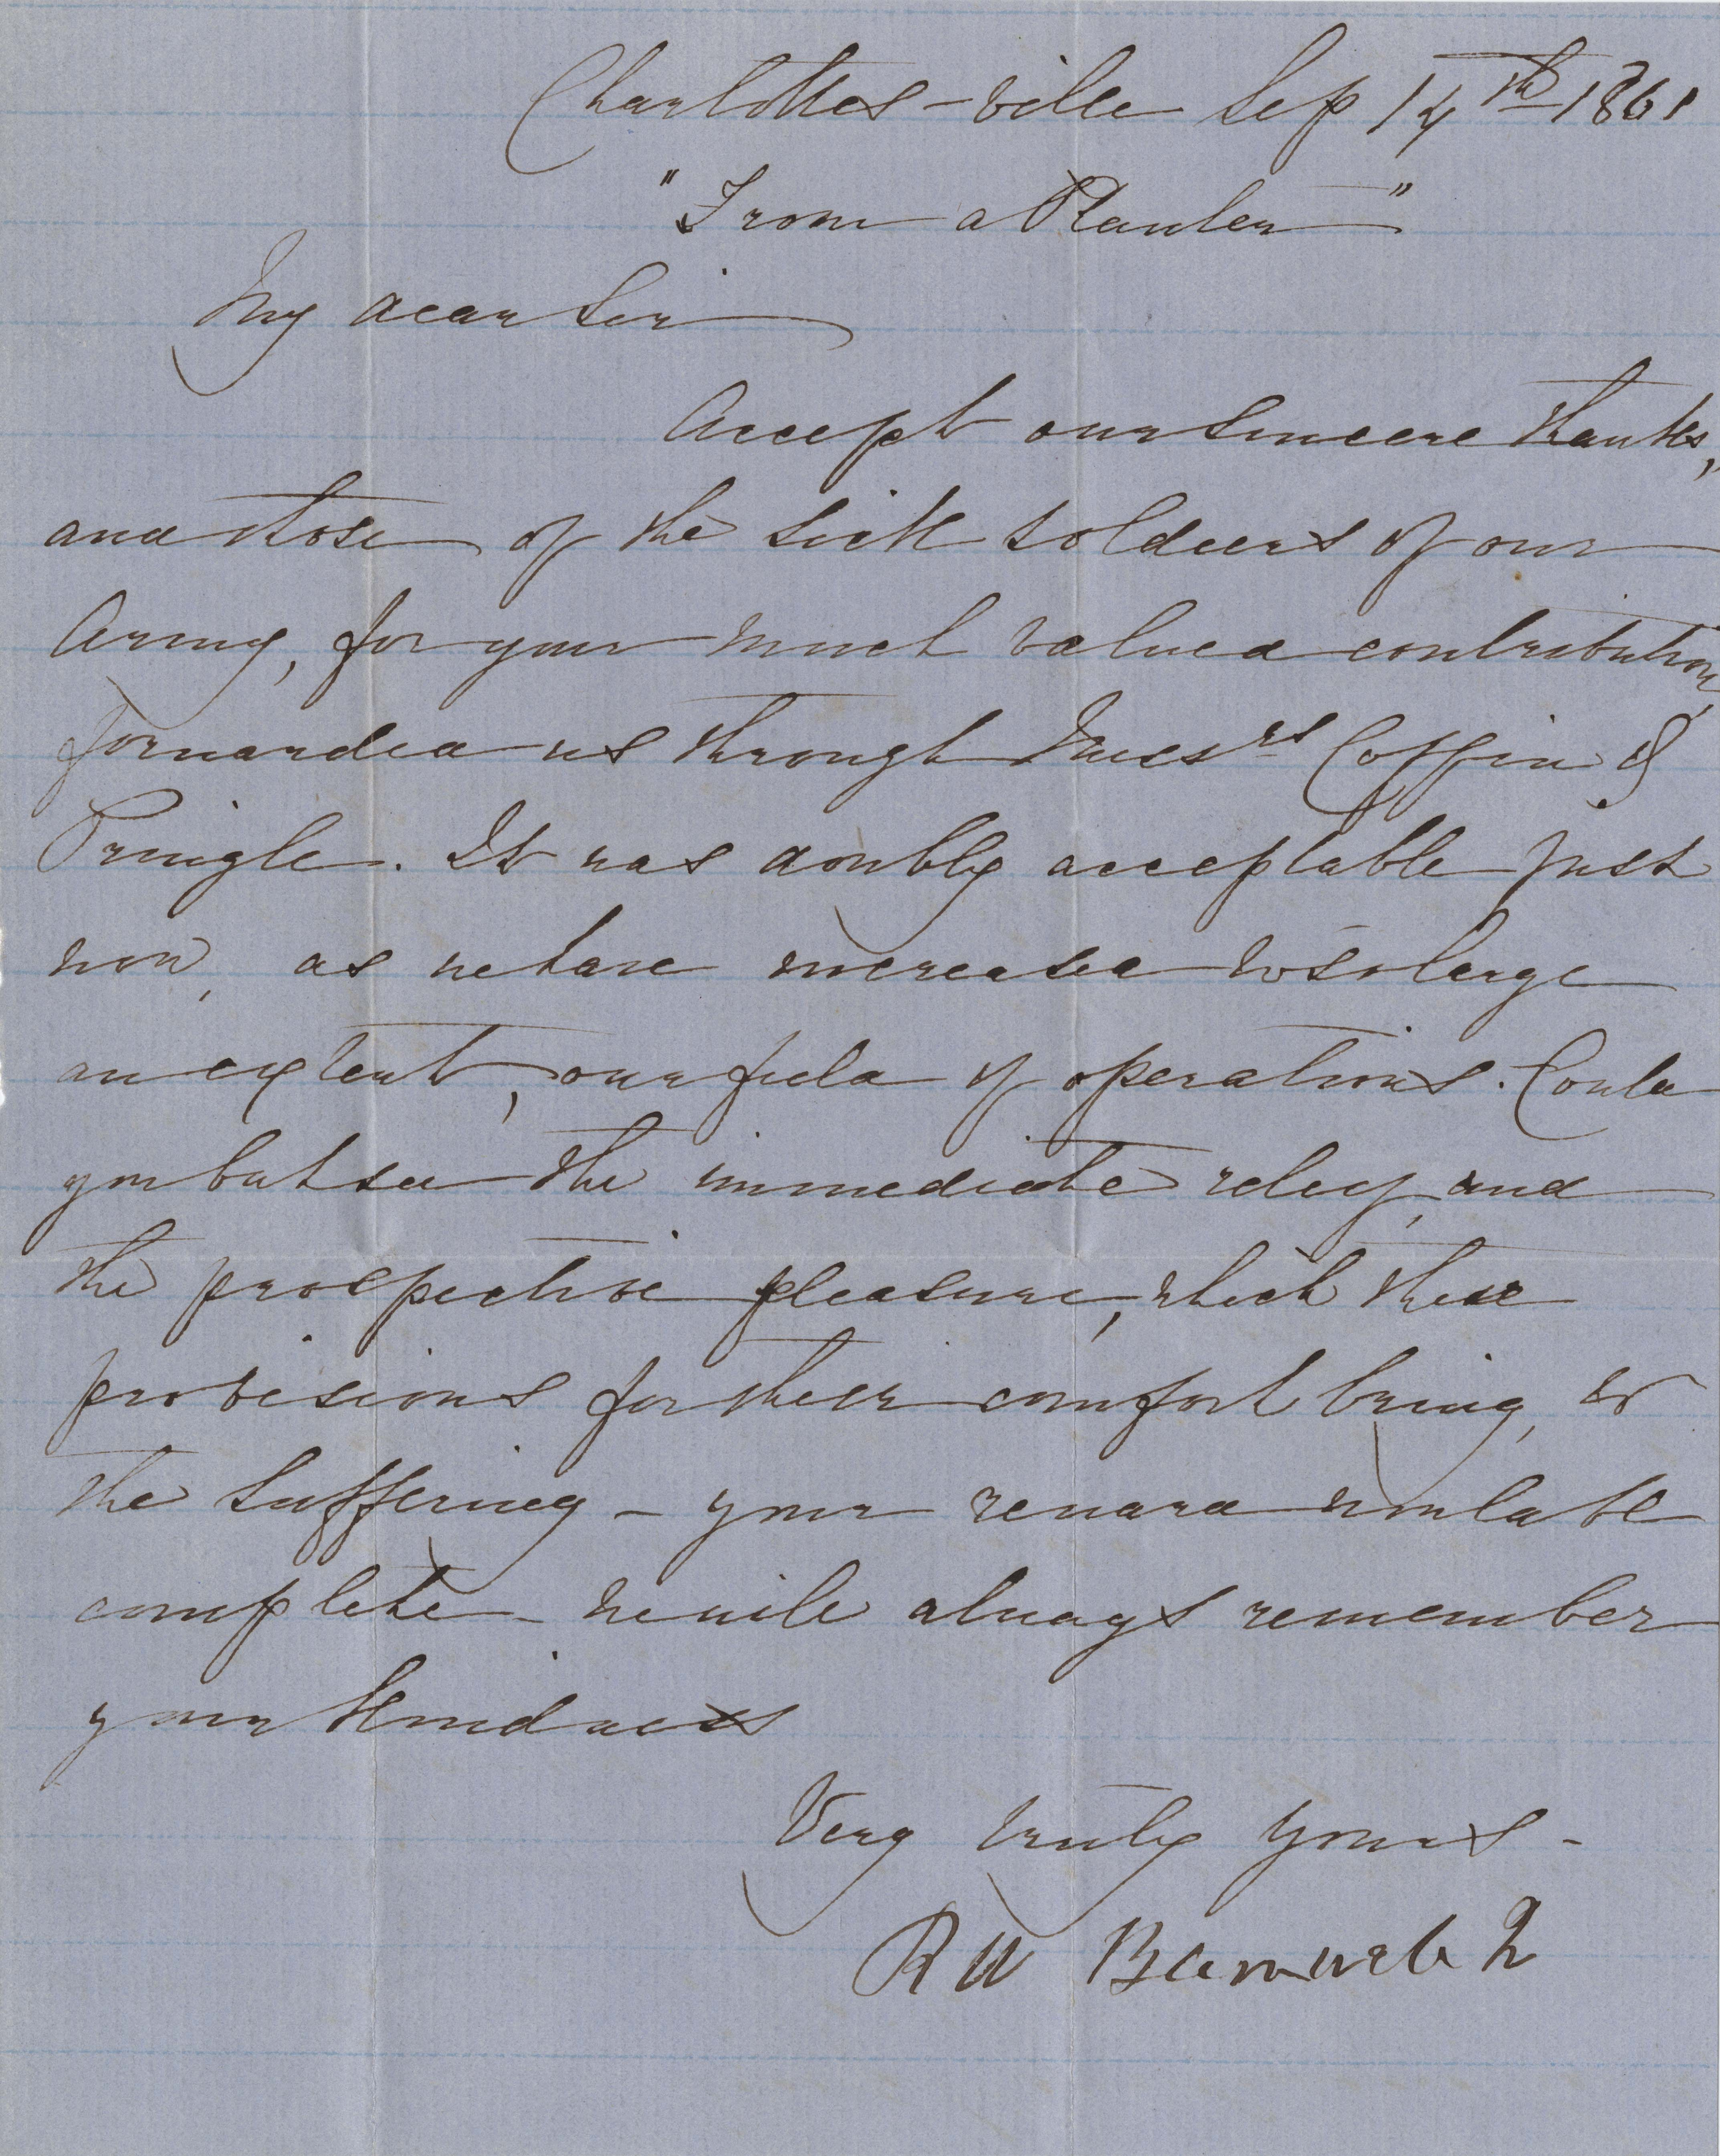 169. R.W. Barnwell to (unknown) -- September 14, 1861